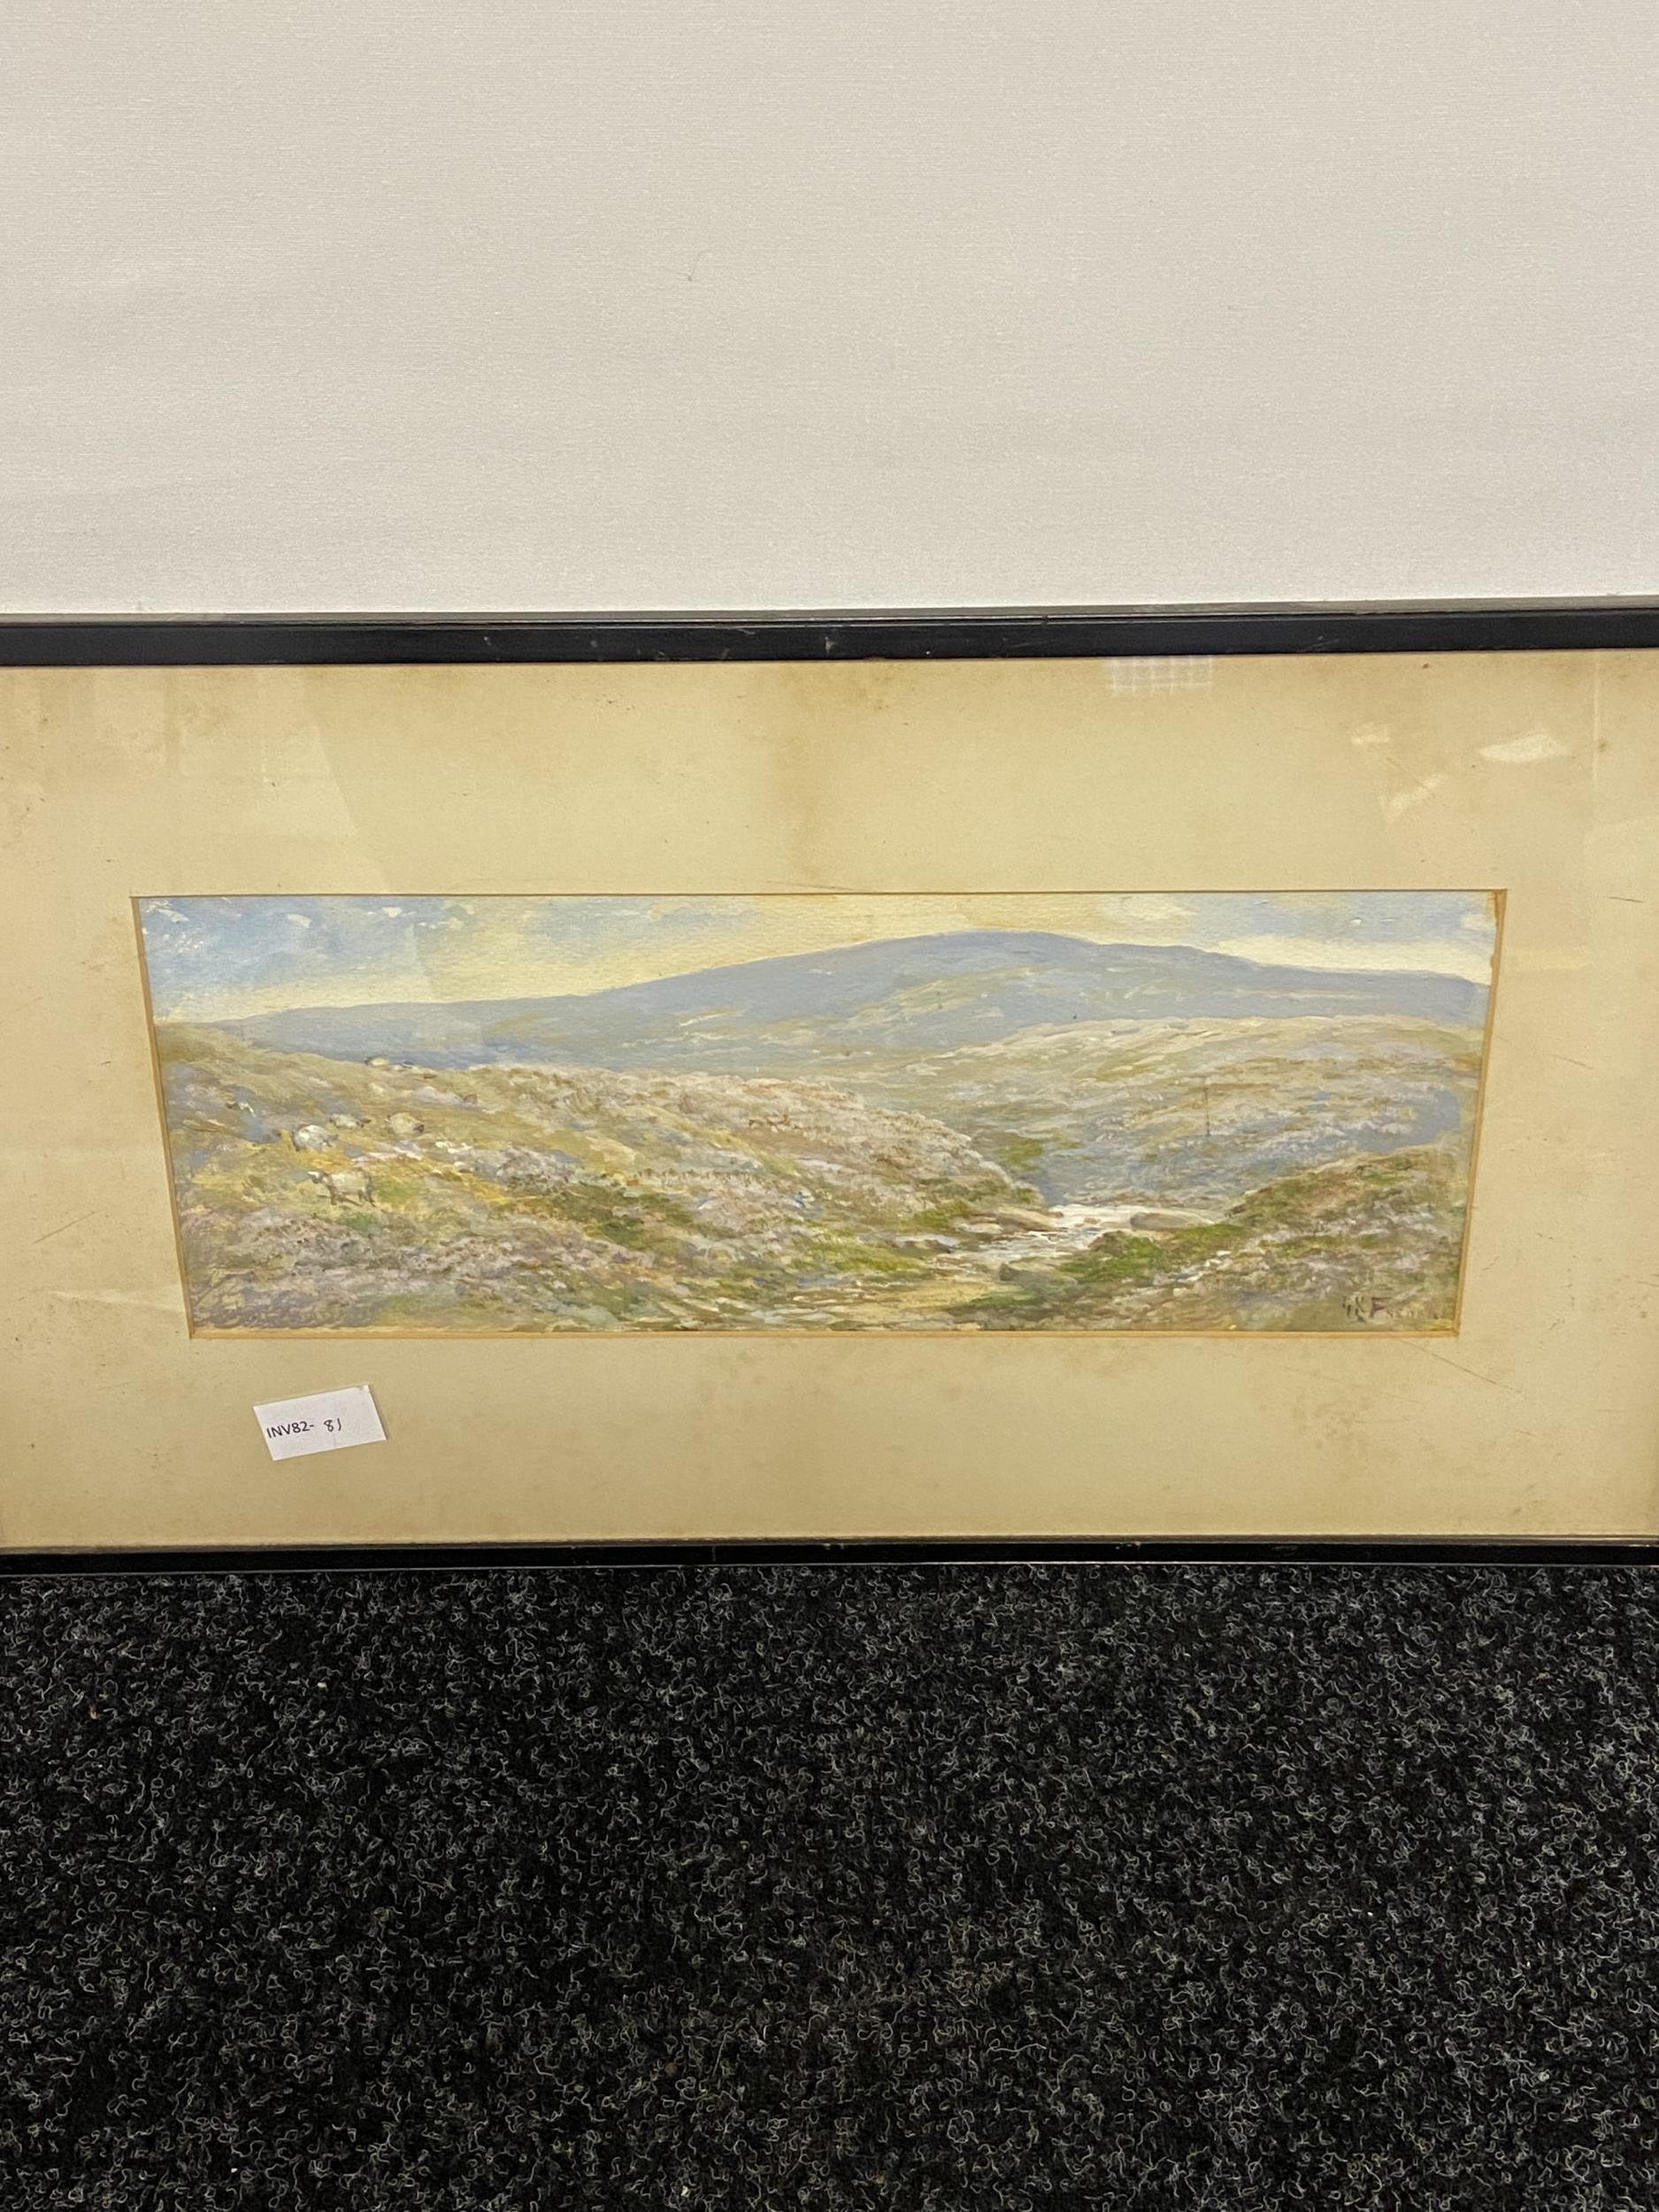 Antique original watercolour depicting sheep in a valley scene. Signed by the artist [Unreadable] [